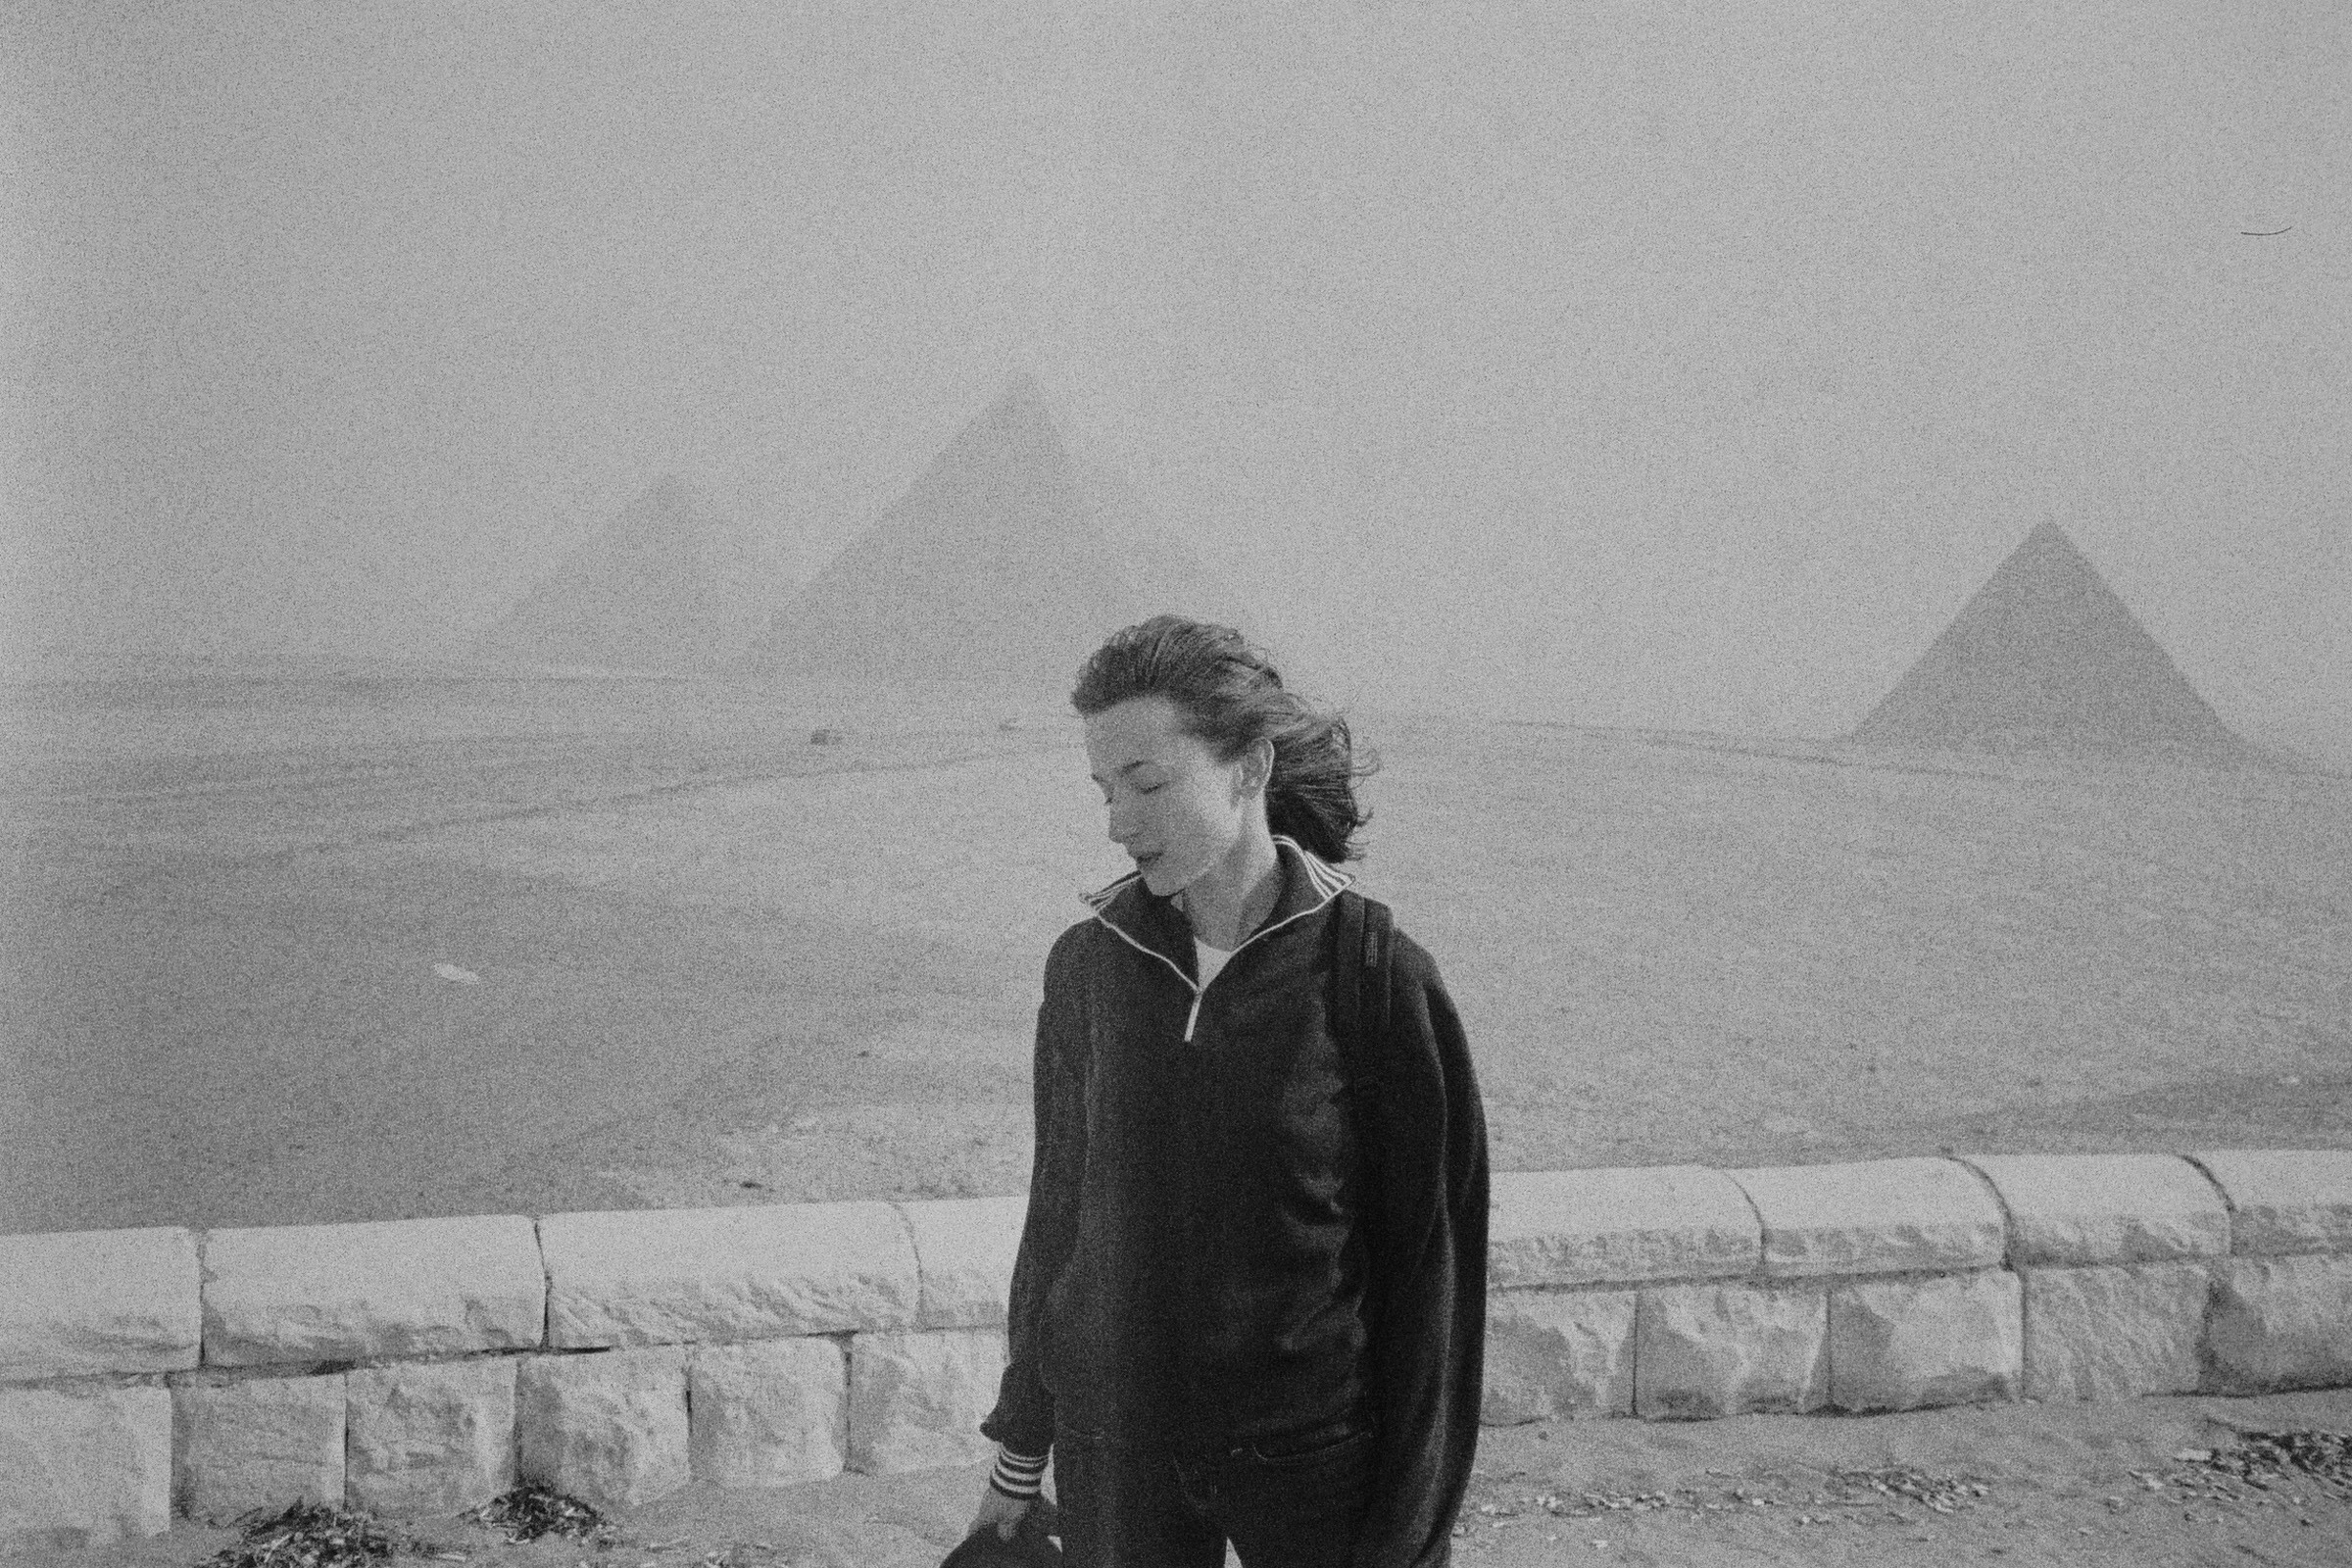 unimpressed - pyramids - egypt